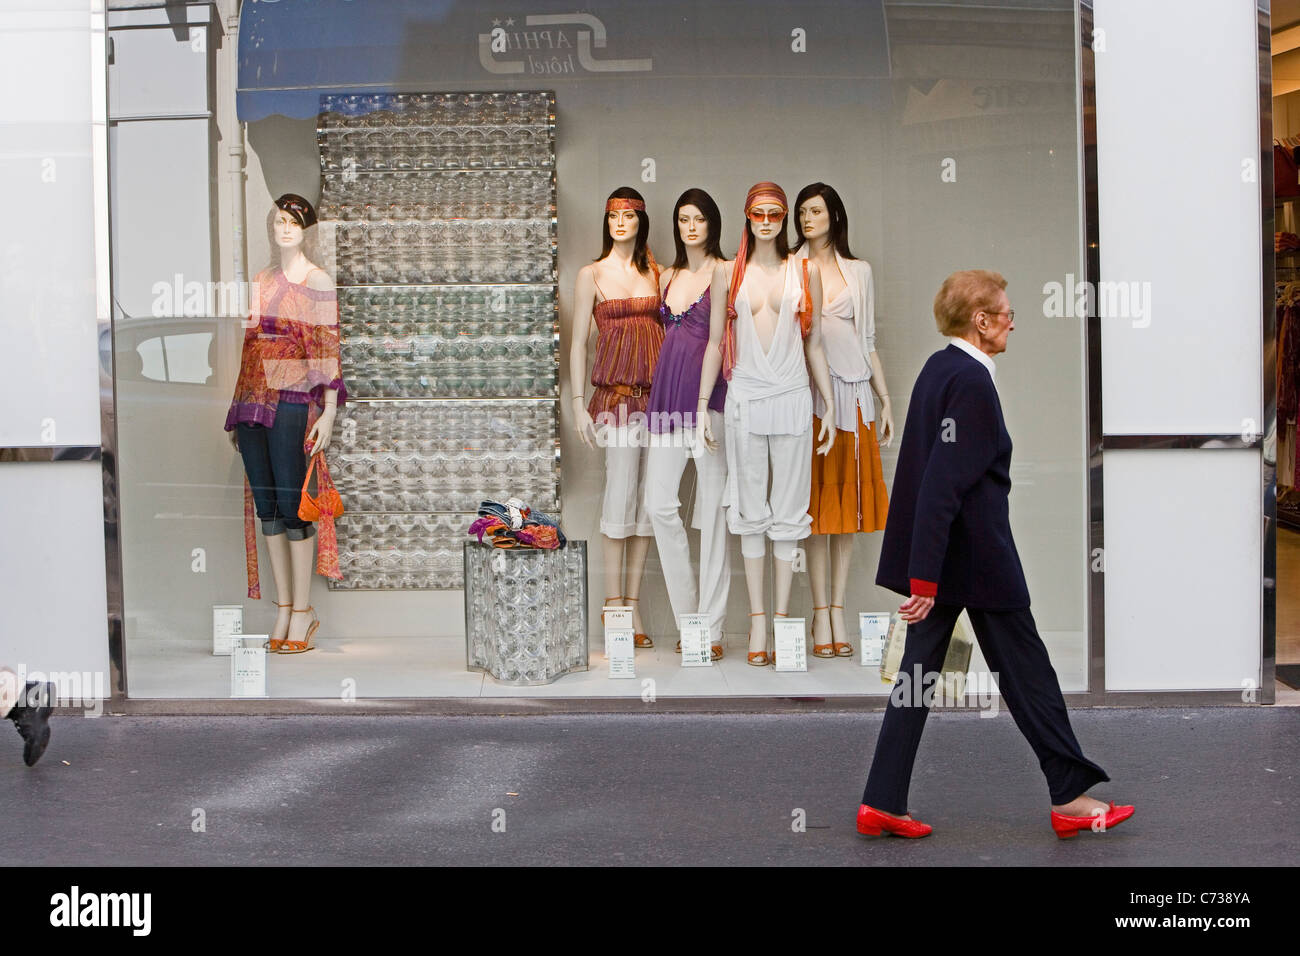 Passerby in front of the shop window of a boutique, Paris, France, Europe - Stock Image